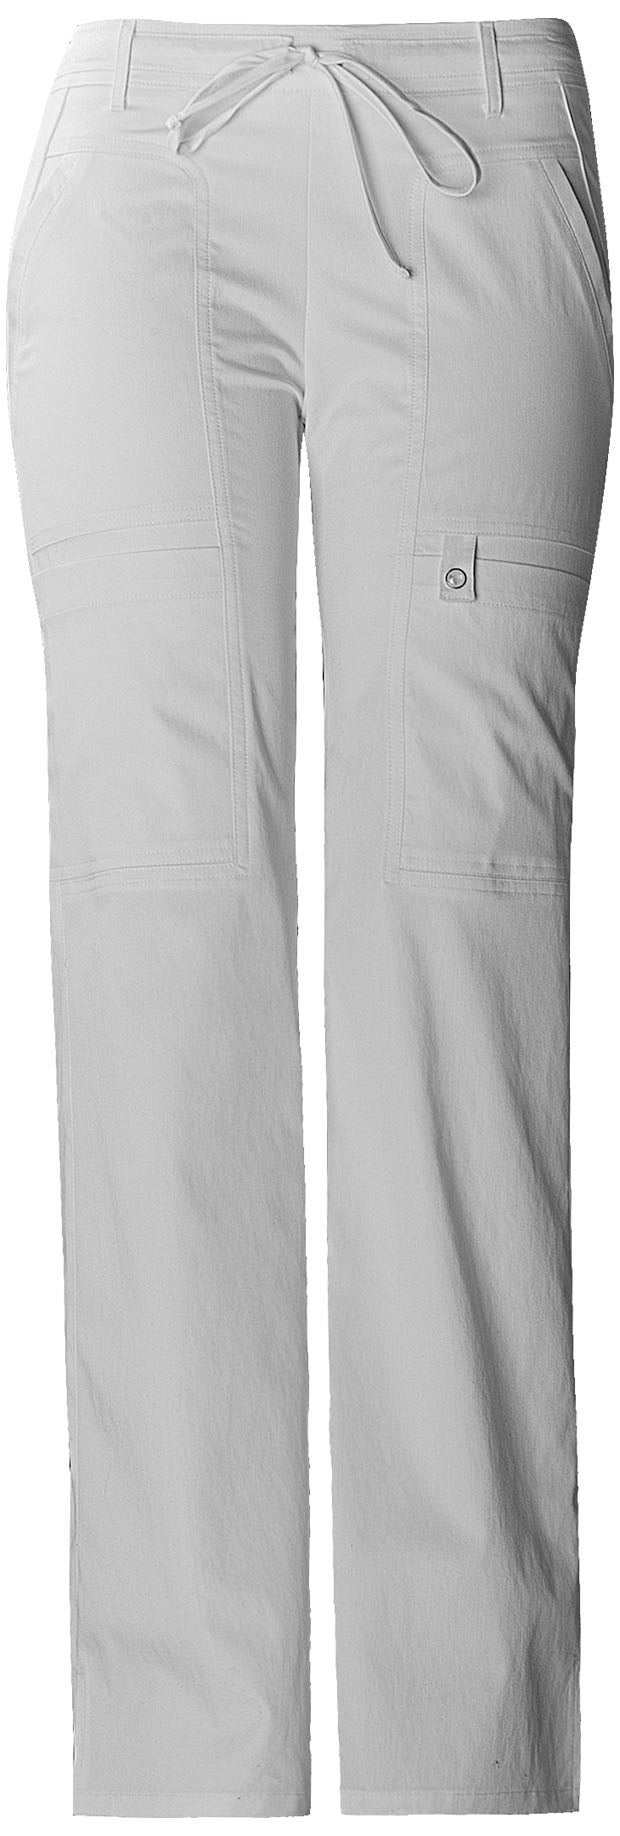 Cherokee Luxe Contemporary Fit Women's Low Rise Flare Leg Drawstring Cargo Pant - 21100P  Petite